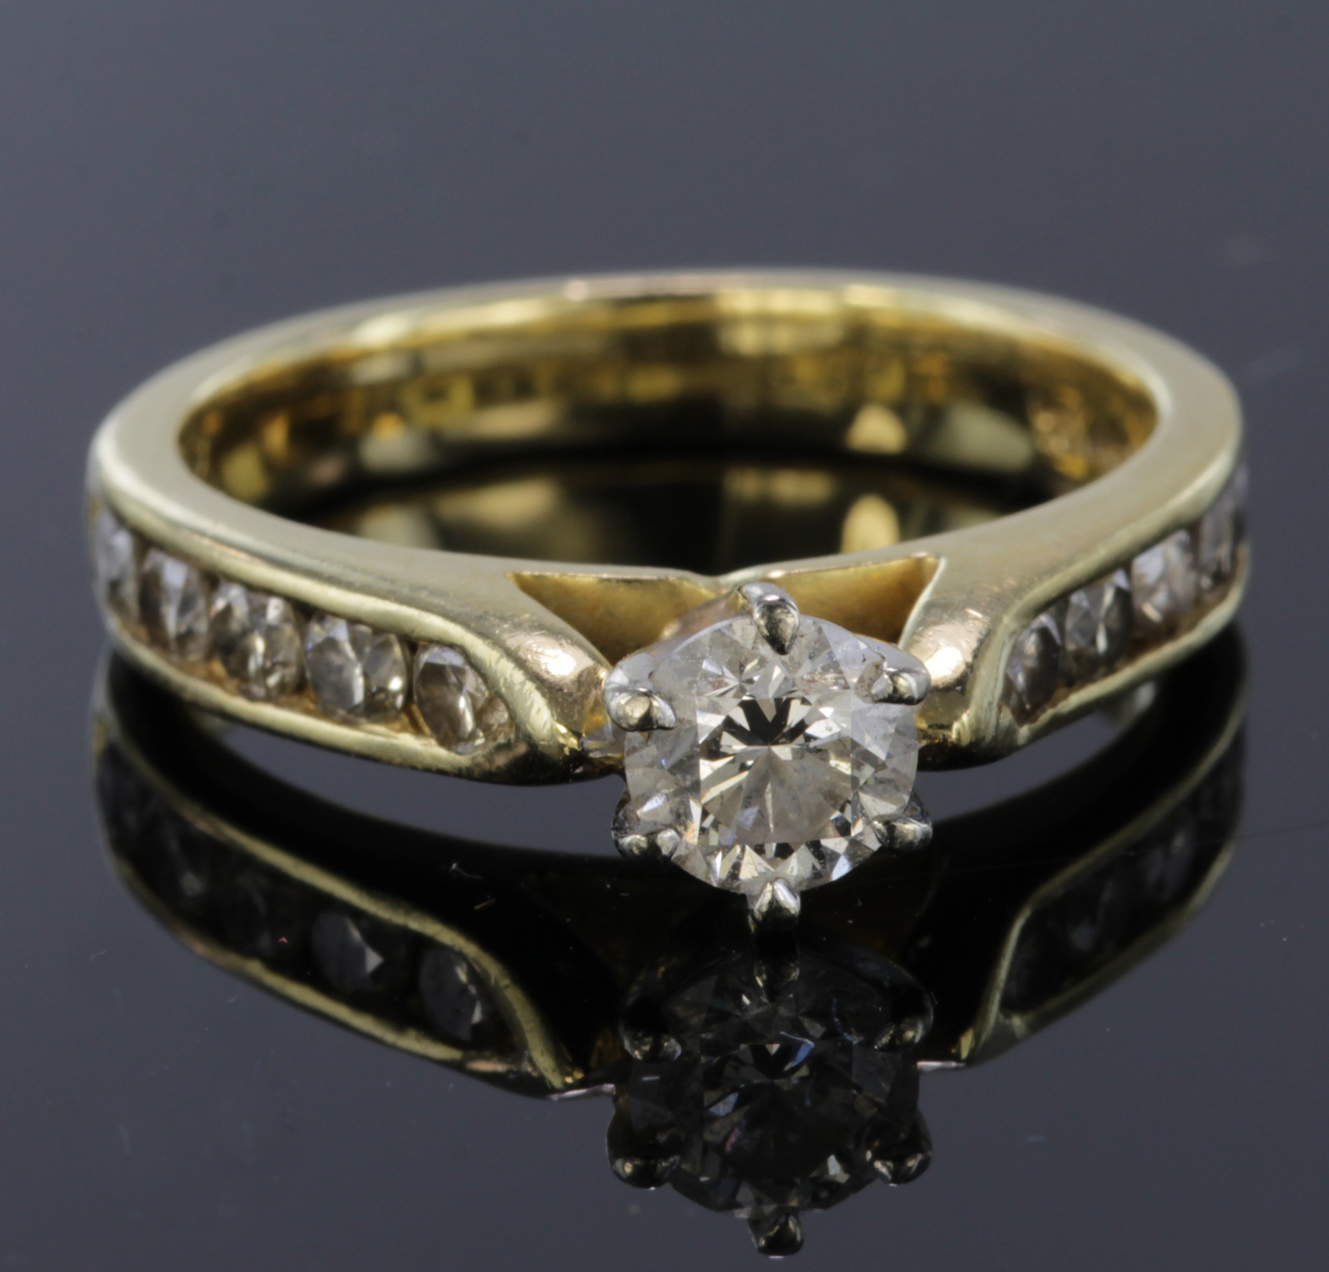 Lot 21 - 18ct Gold Diamond Ring Centre stone approx 0.50 ct with Diamond shoulders approx 1.0ct total